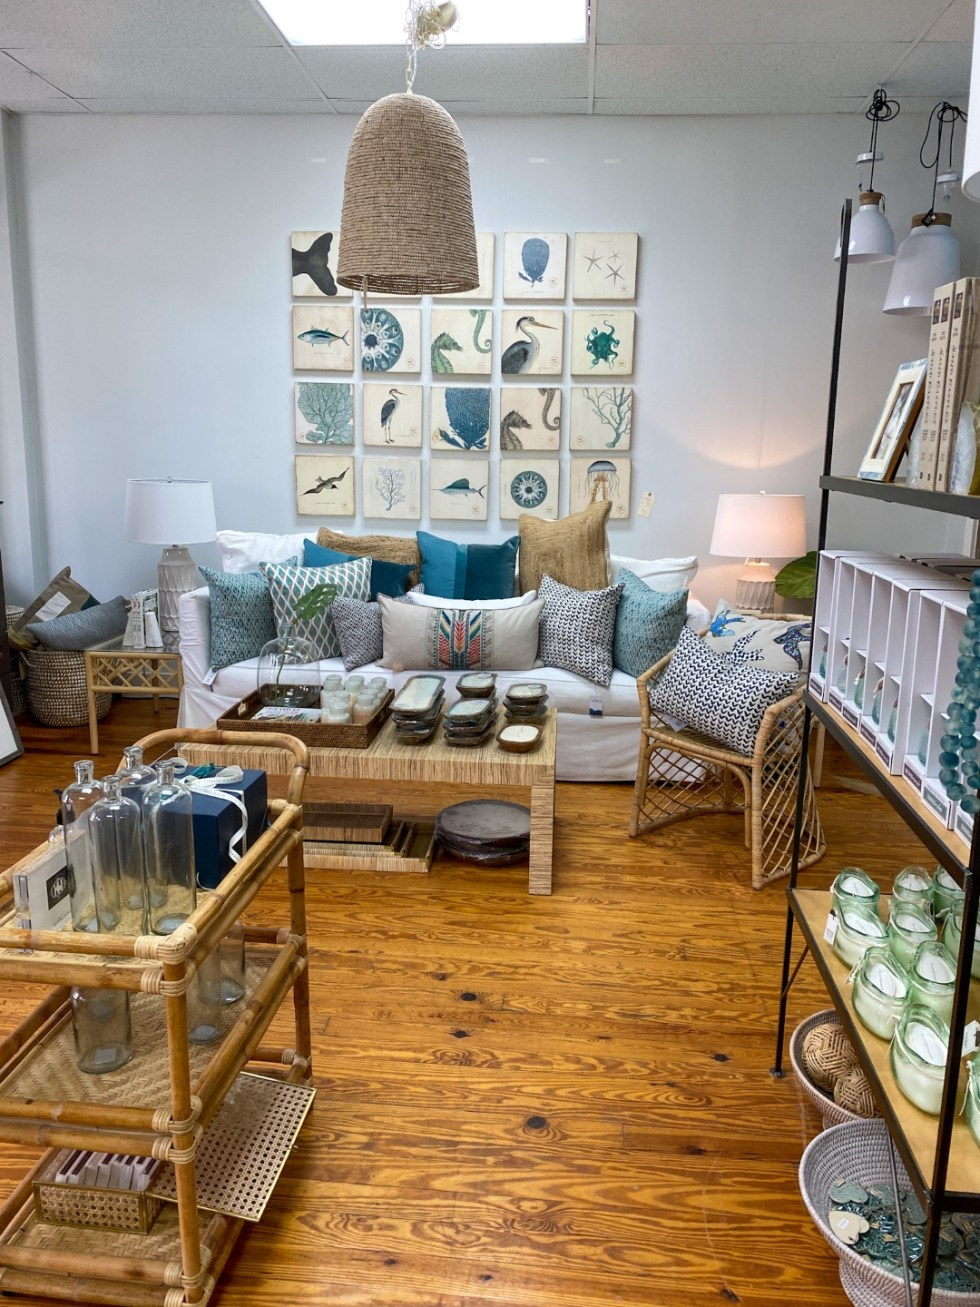 A Spring Weekend in Wilmington, NC: the Best Things to Do - I'm Fixin' To - @imfixintoblog |Weekend in Wilmington by popular NC travel blog, I'm Fixin' To: image of Airlie Moon interior.